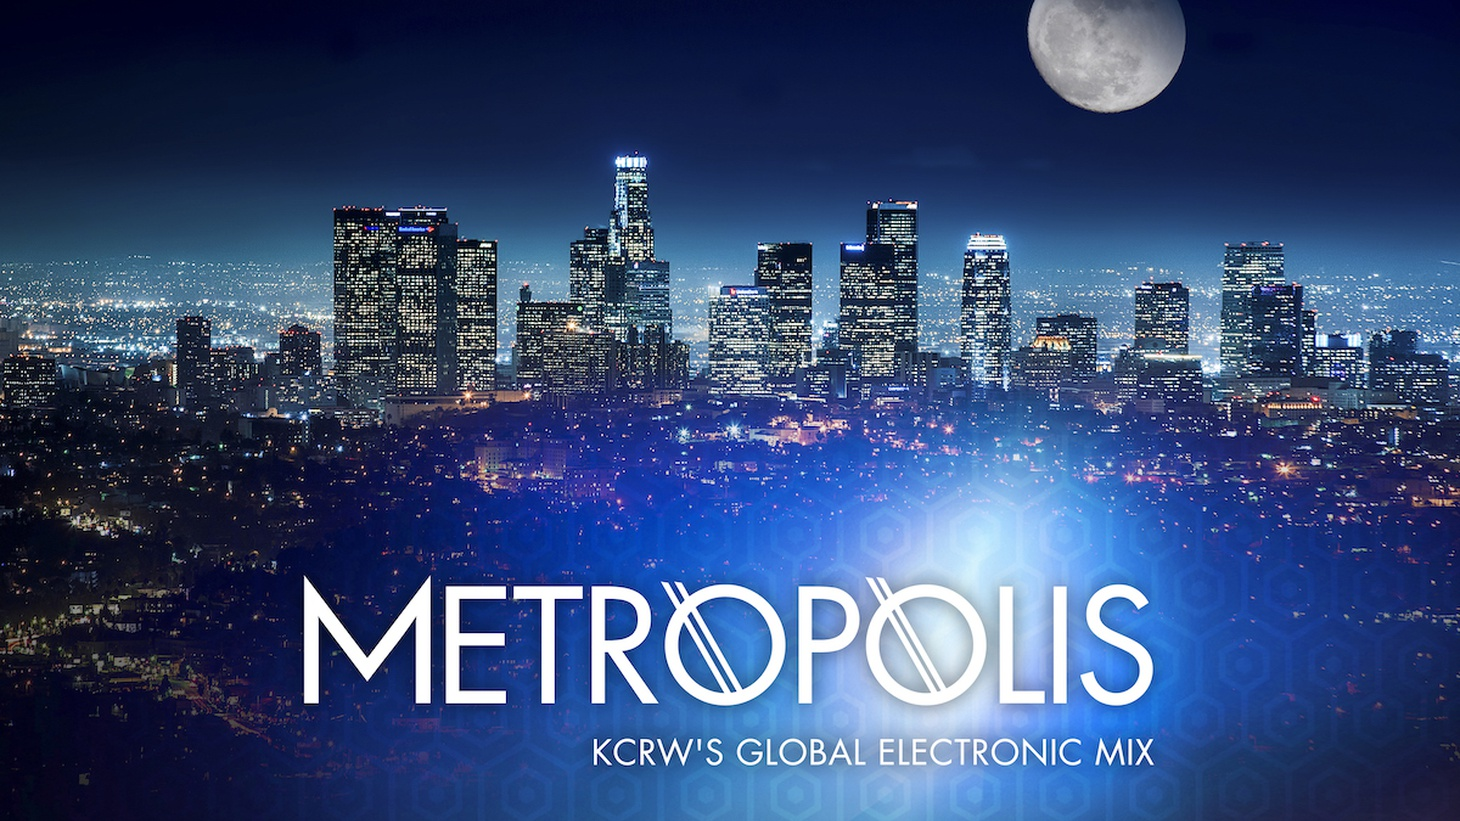 Welsh singer/songwriter/producer Jem will guest DJ and spin some of her favorite tracks on Metropolis during the 9 o'clock hour.  On Saturday, November 22, Jem will perform live as part of KCRW's A Sounds Eclectic Evening.